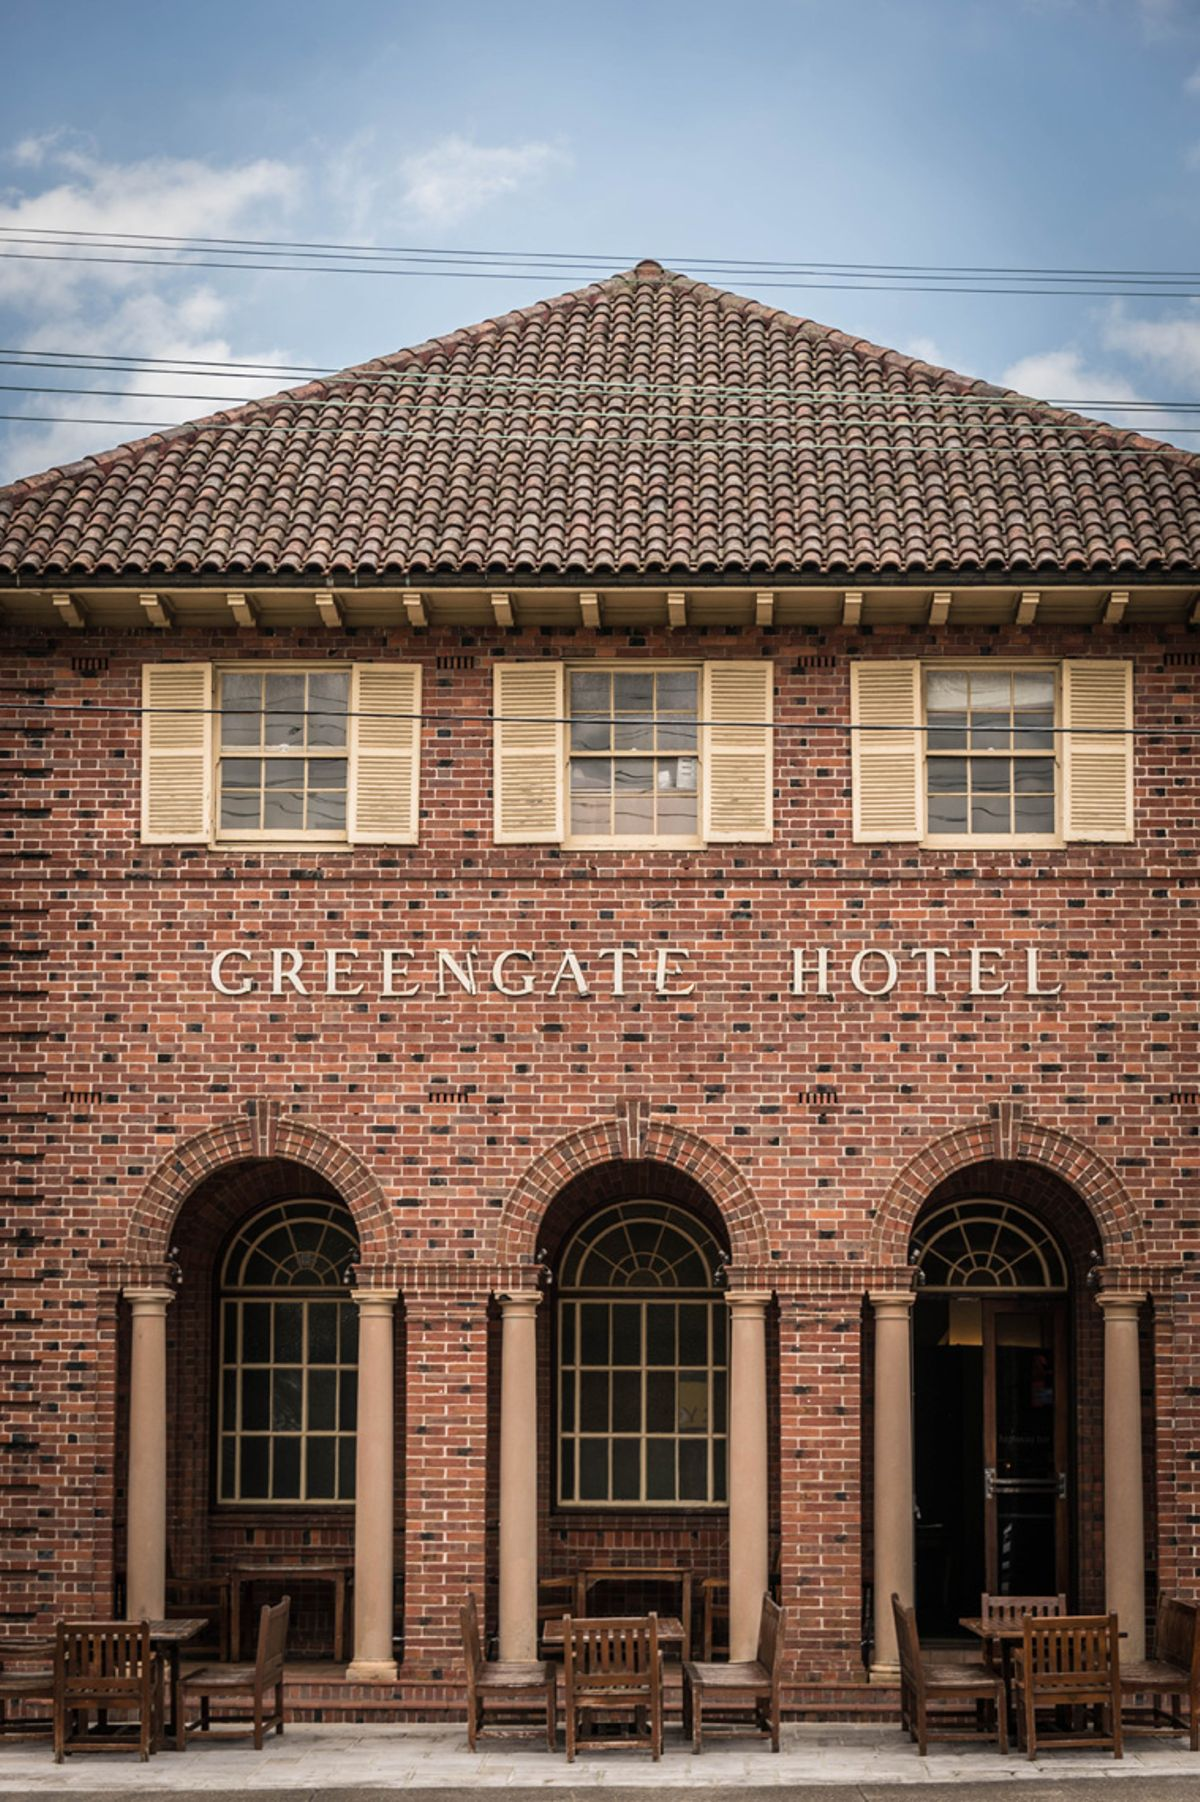 MB - Killara - Greengate Hotel